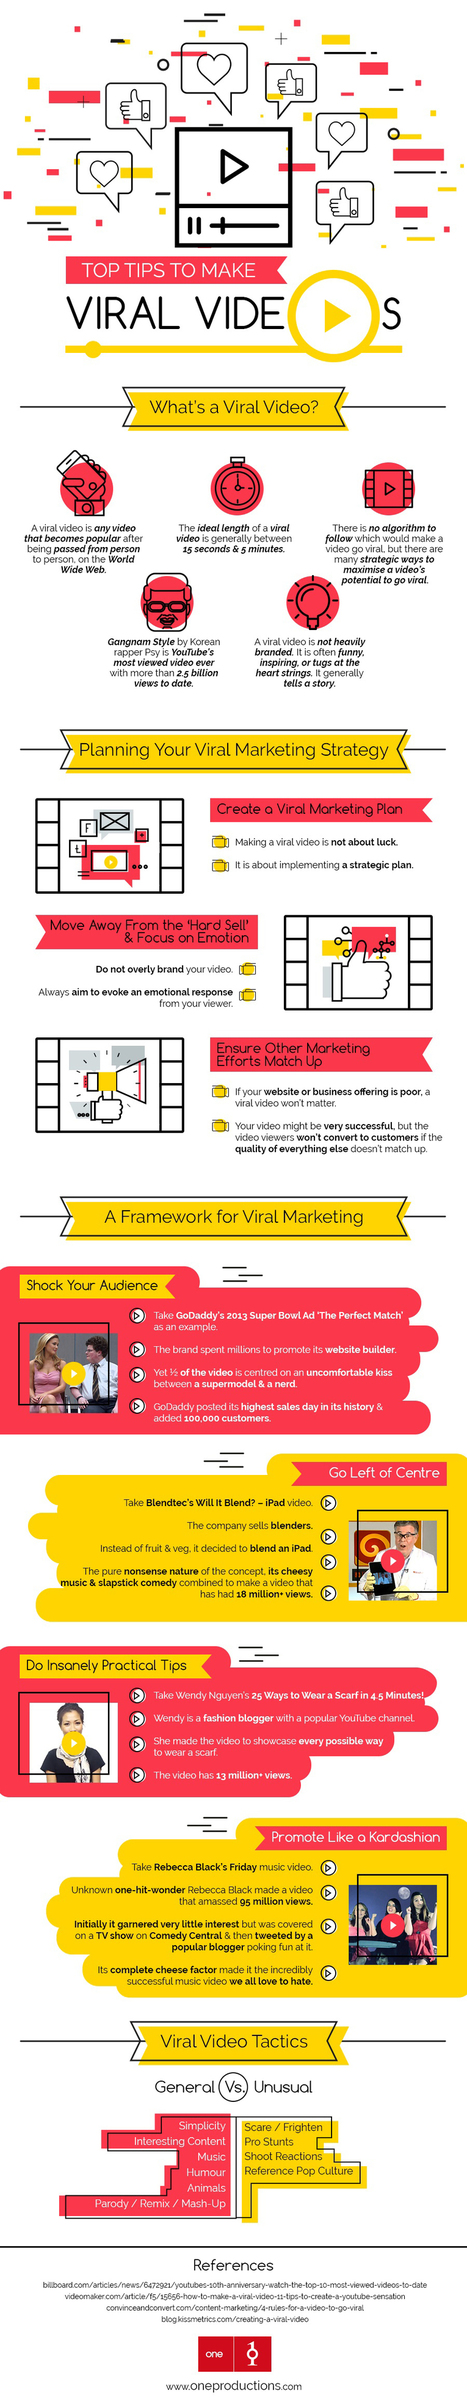 Use Video to Maximize Content Marketing Efforts #Infographic | MarketingHits | Scoop.it